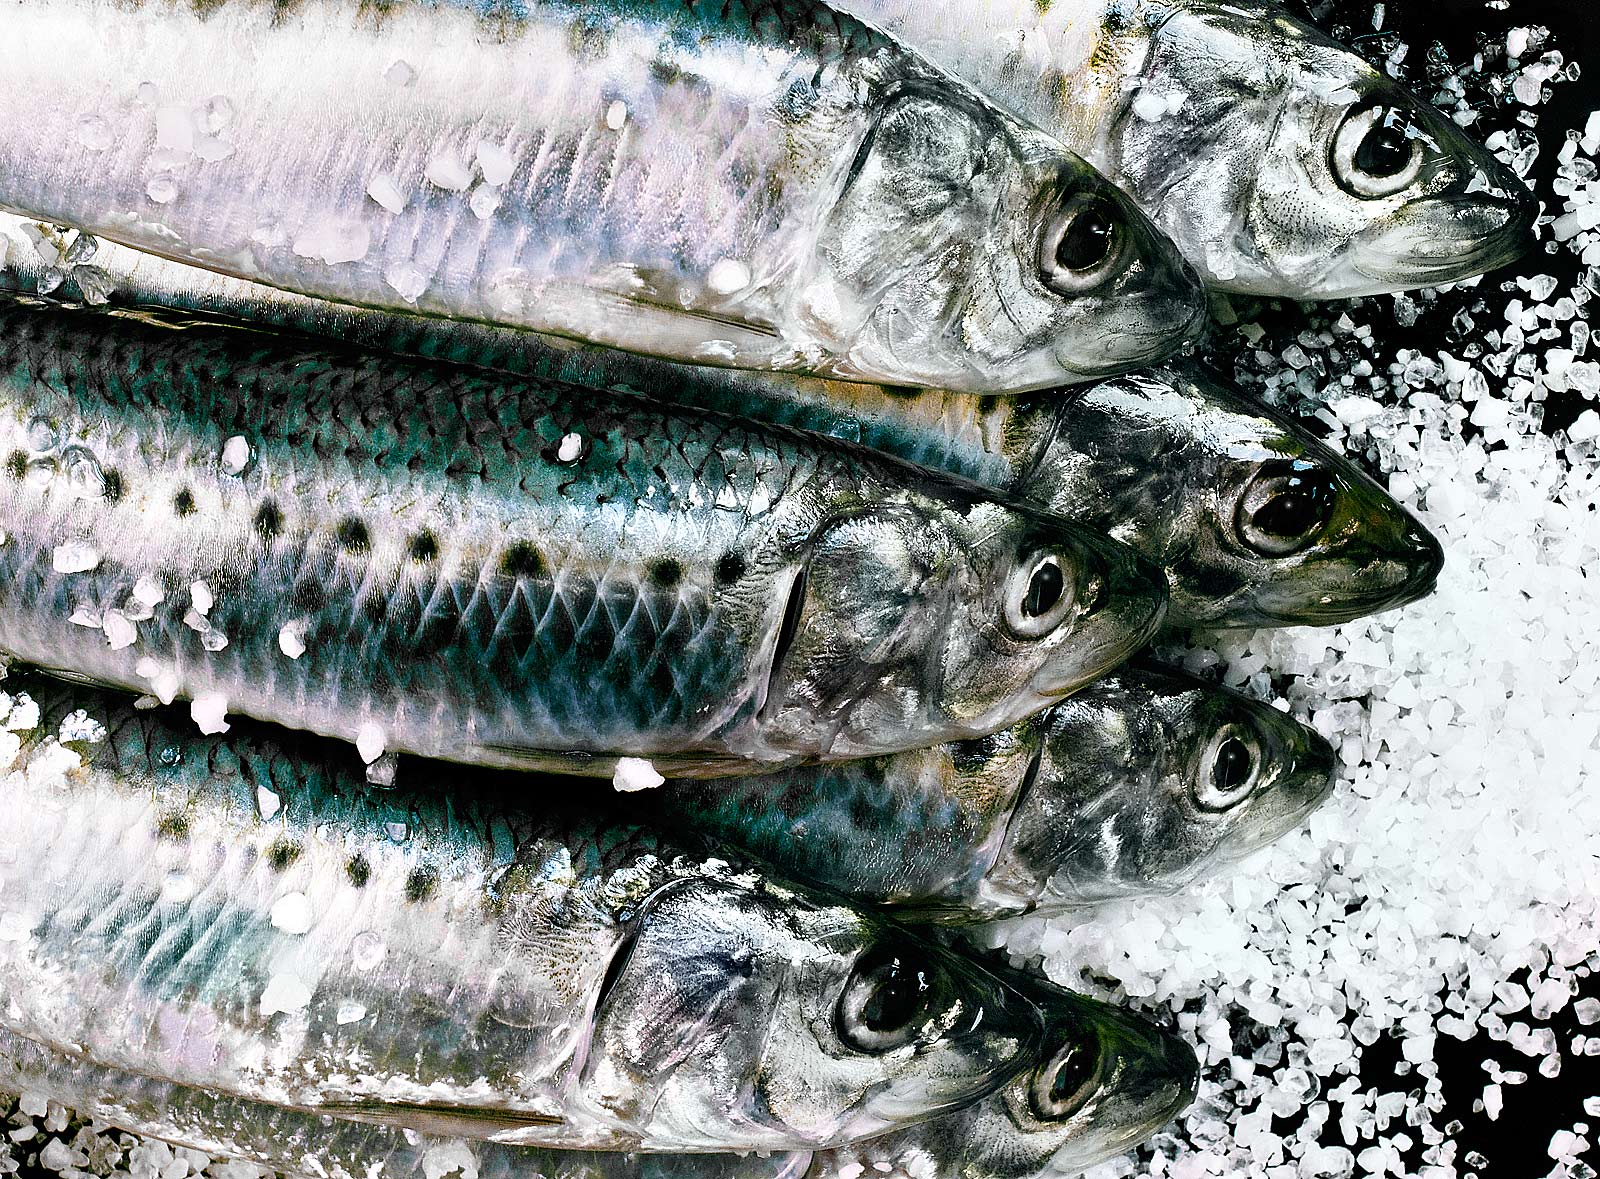 Sardinhas-Sardines-Sardinhada-Best food photography.